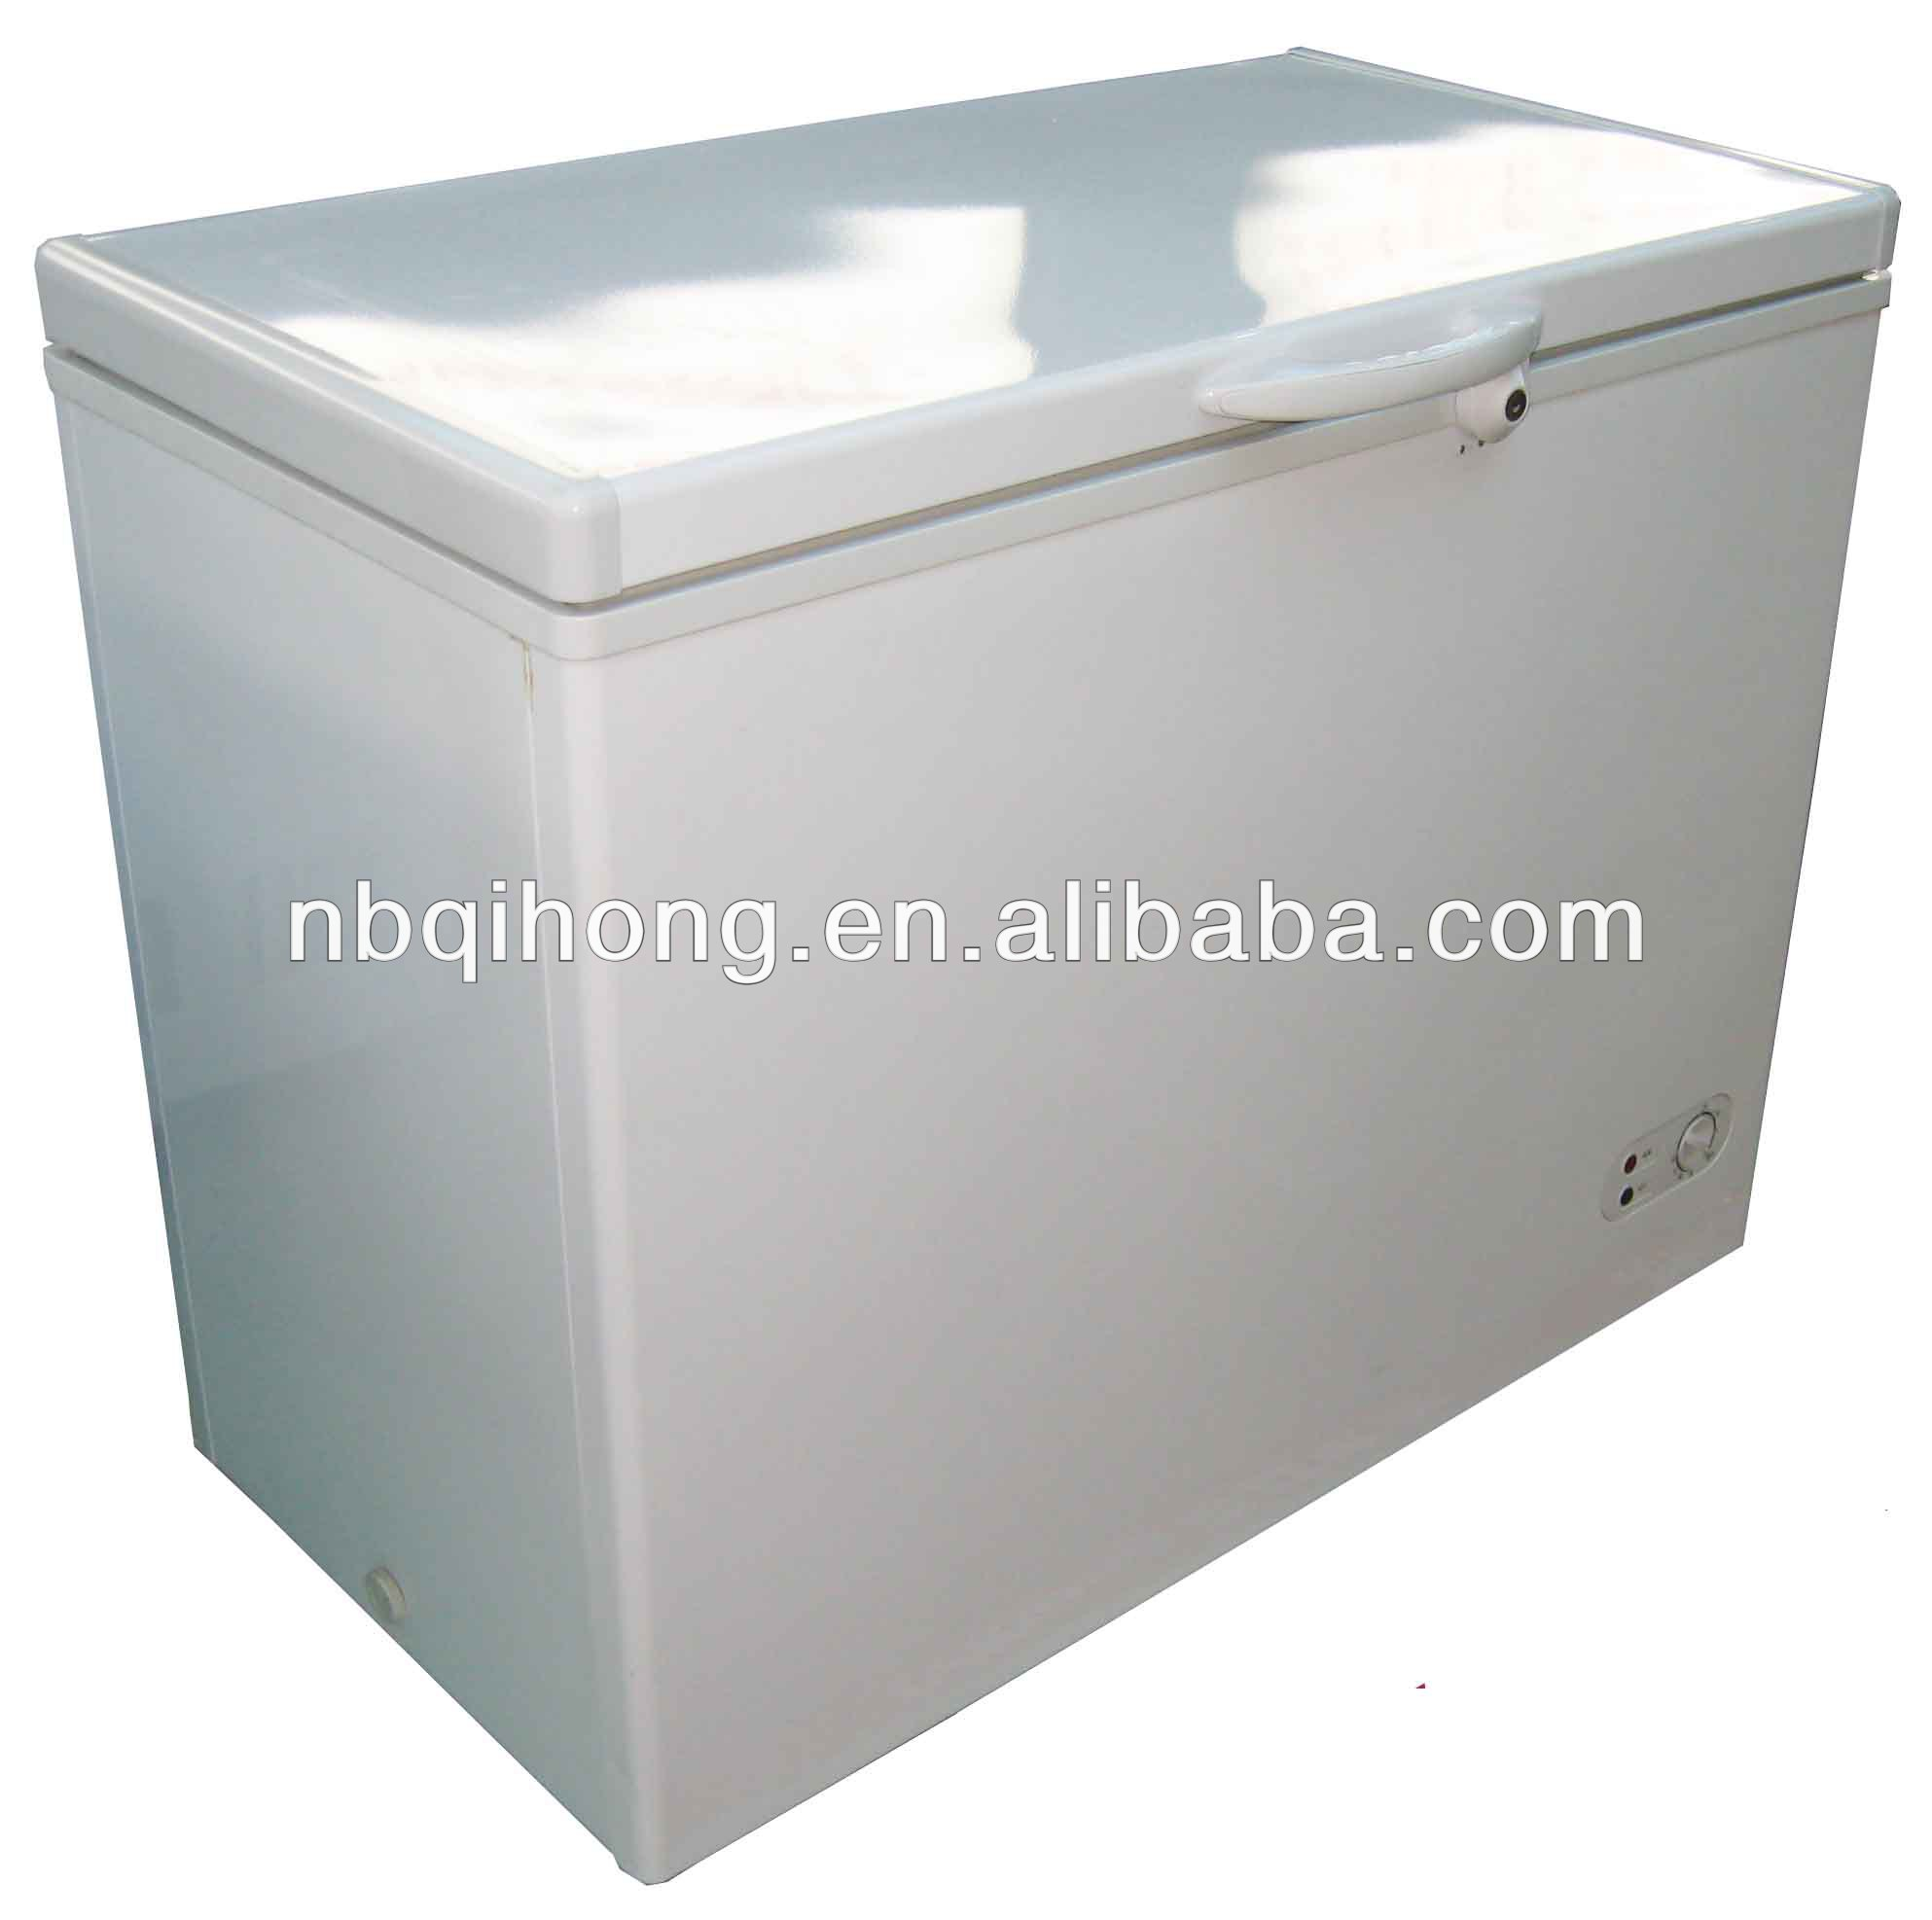 208L top open door chest freezer